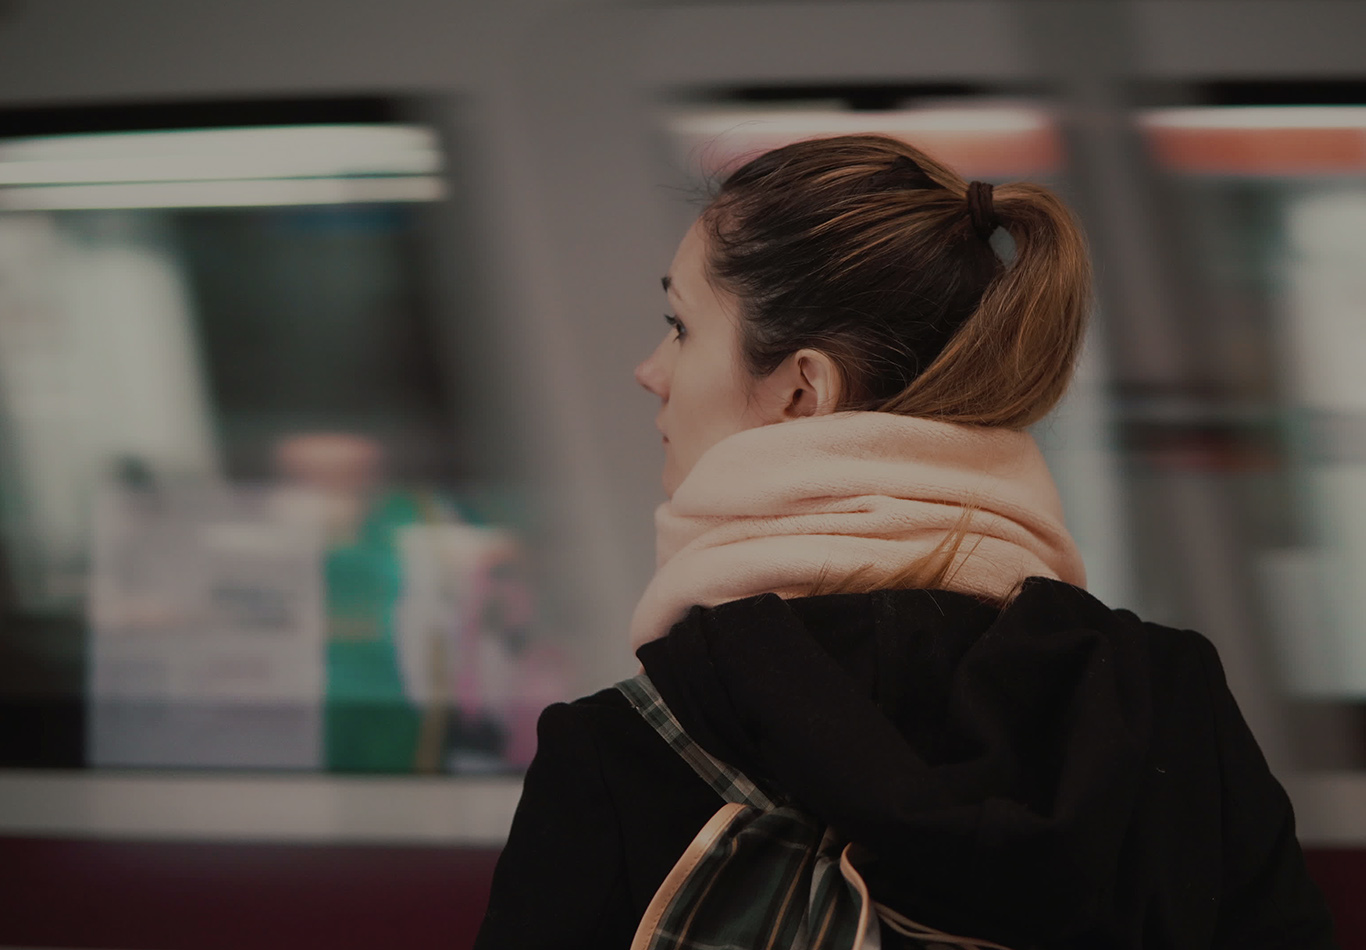 A woman is standing and looking while a train passes by